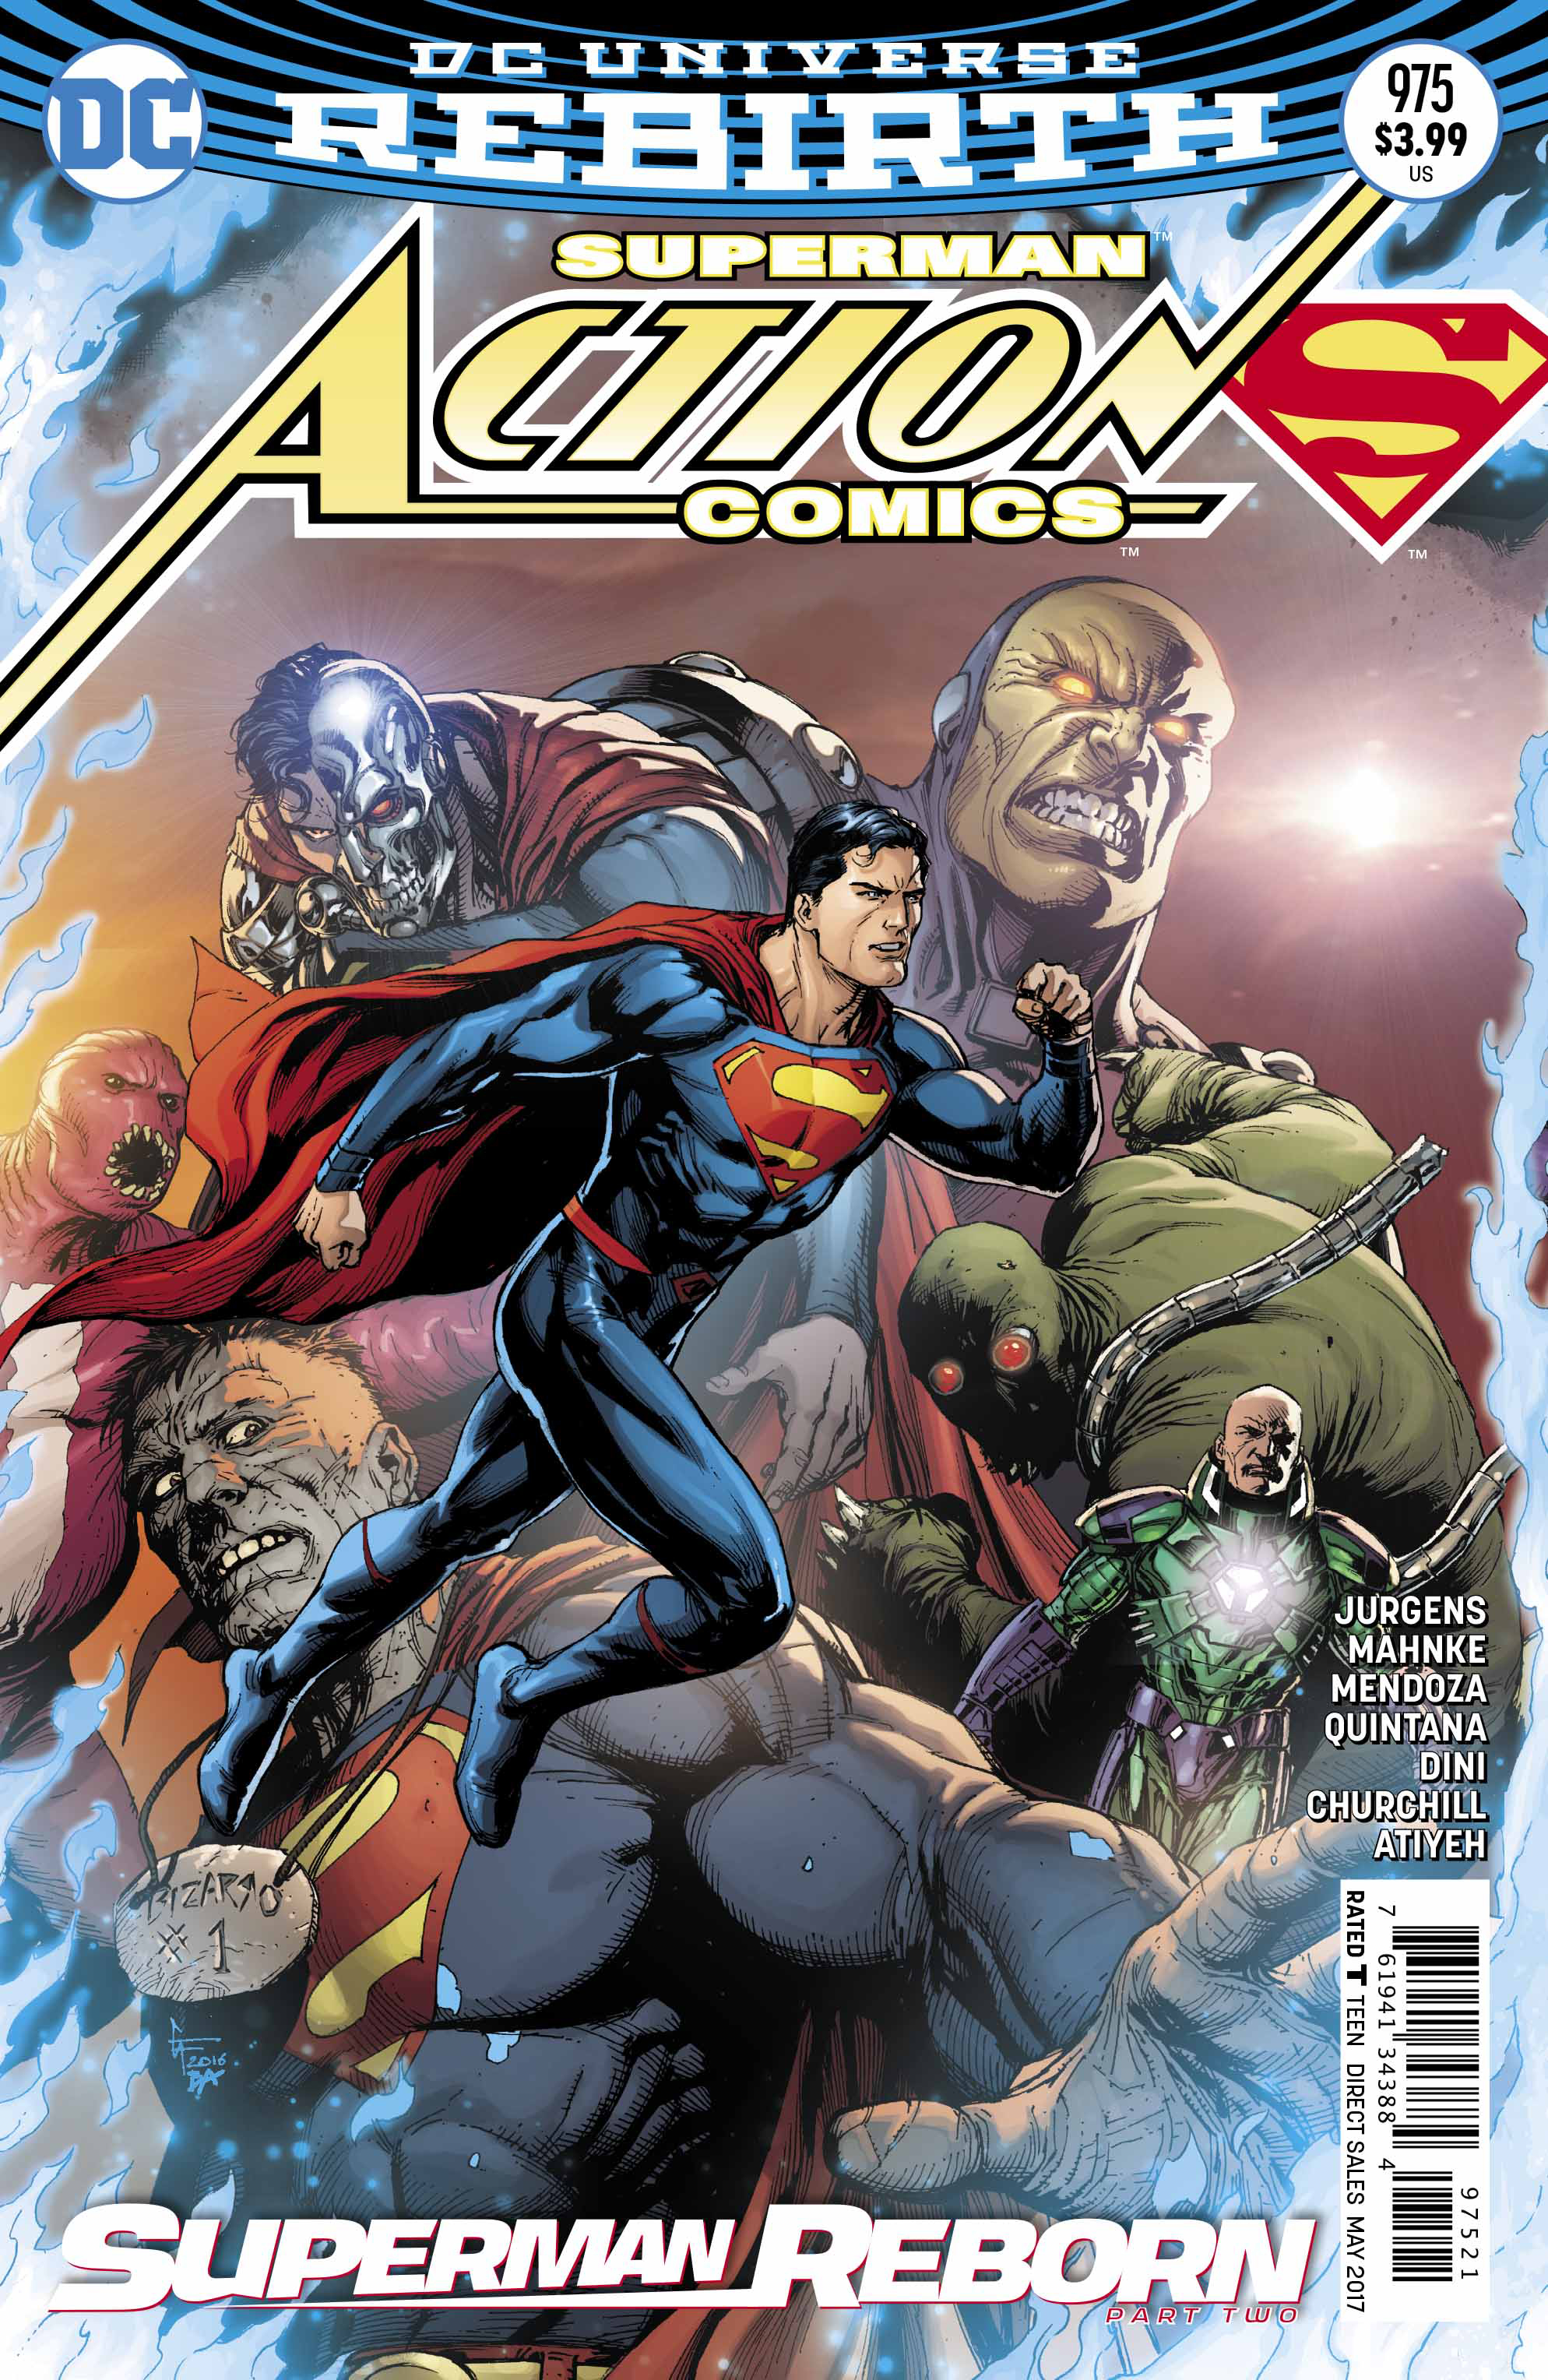 ACTION COMICS #975 VAR ED